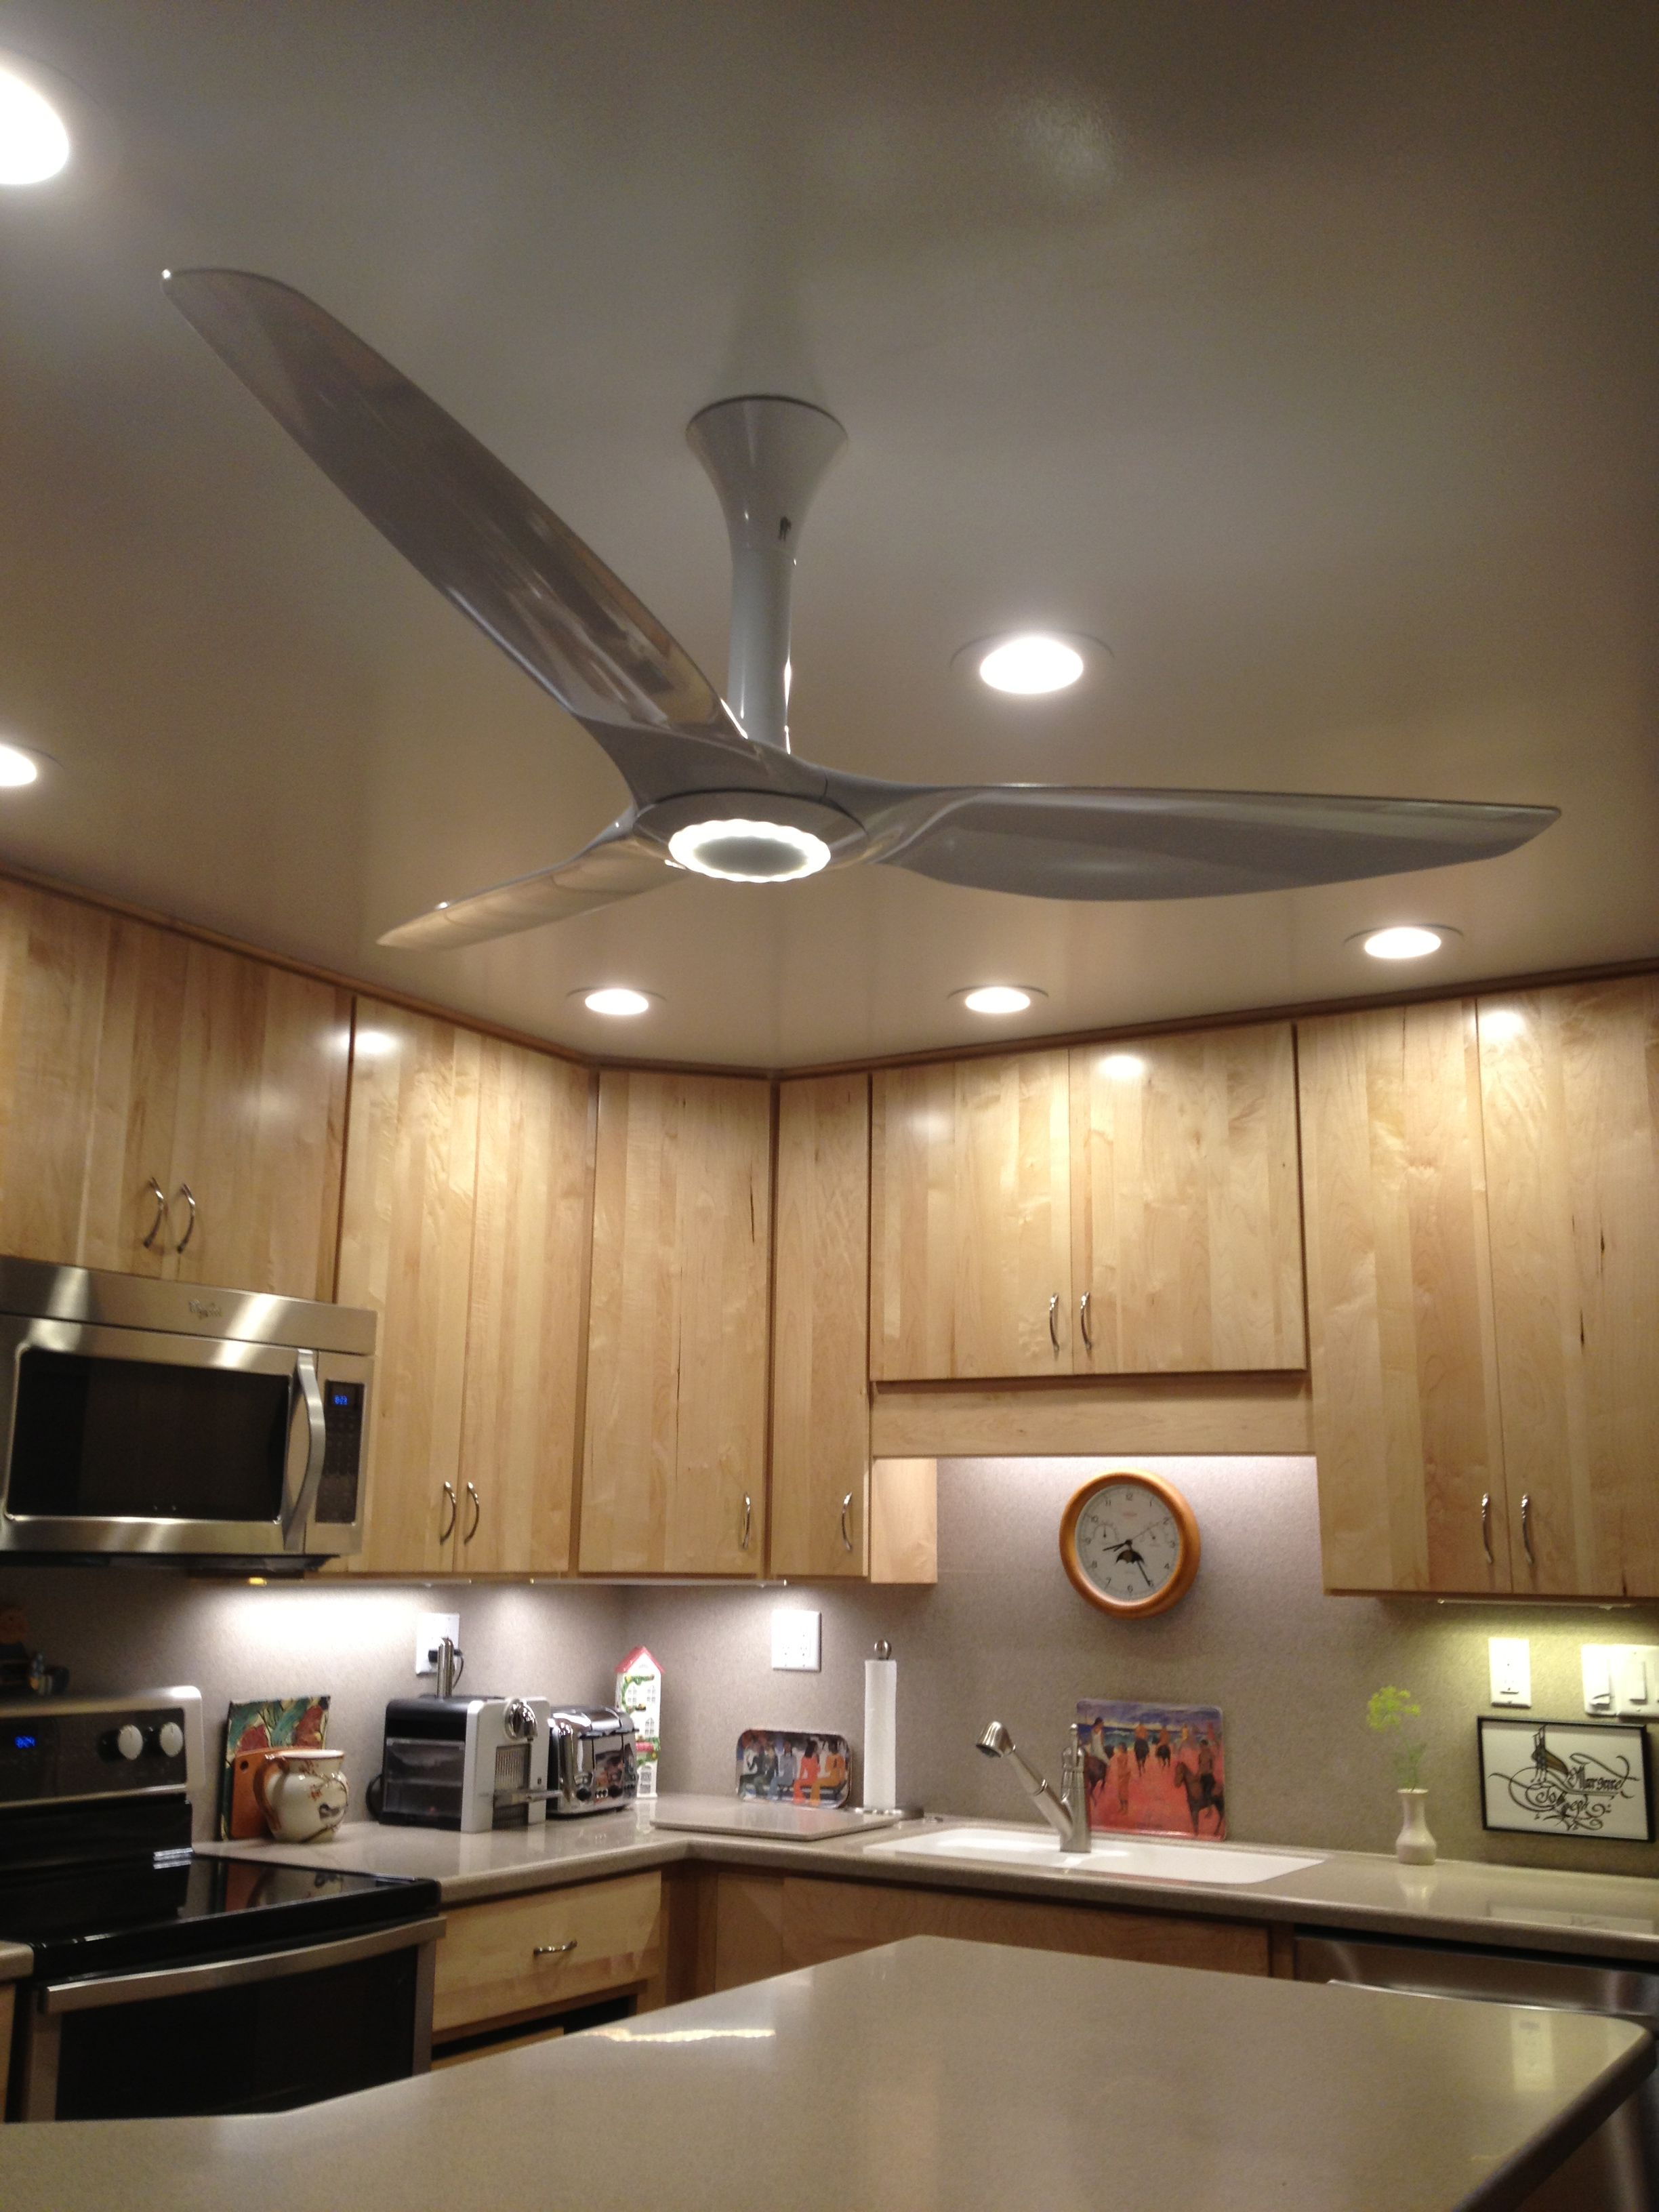 Haiku ceiling fan in White Matrix posite with LED lighting